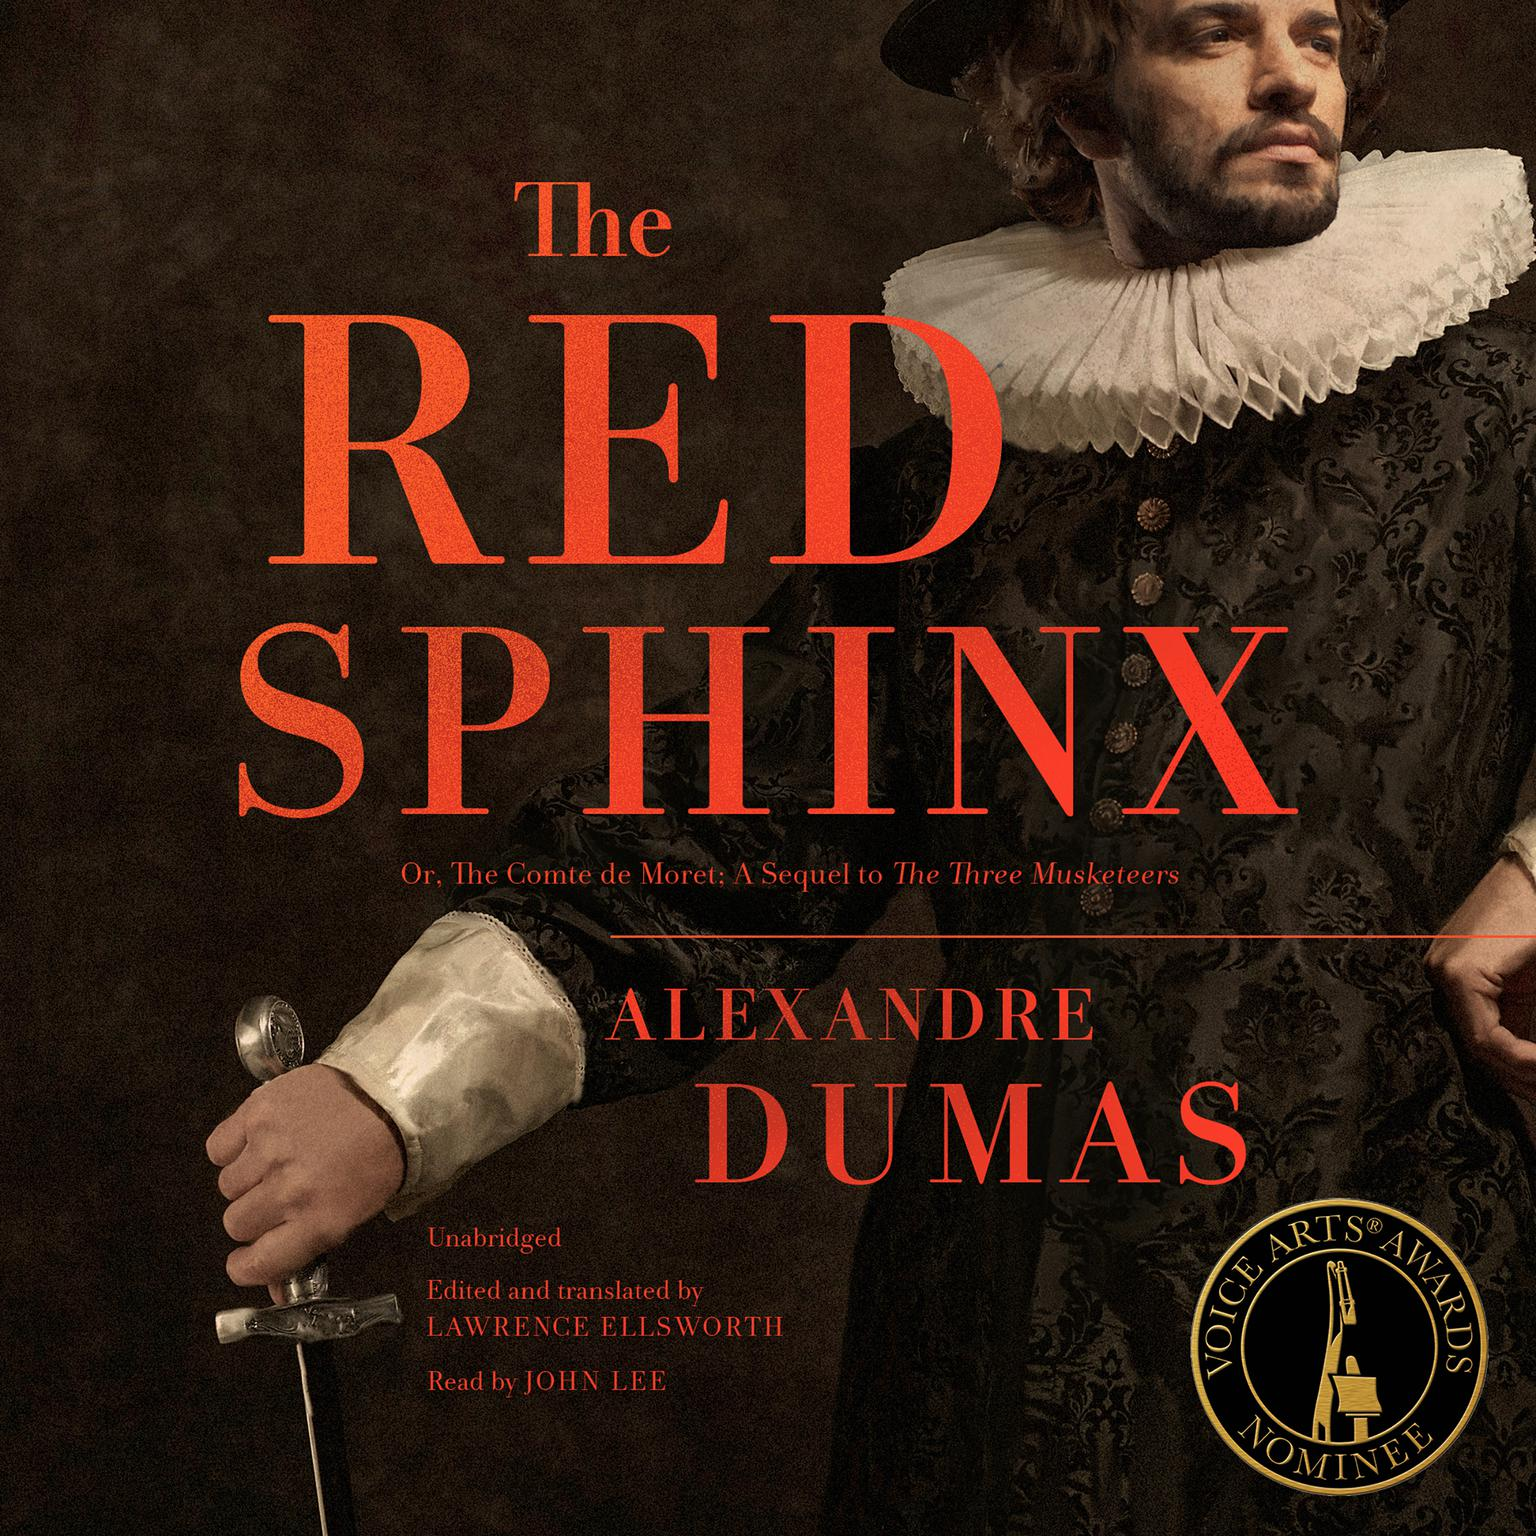 Printable The Red Sphinx: Or, The Comte de Moret; A Sequel to The Three Musketeers Audiobook Cover Art